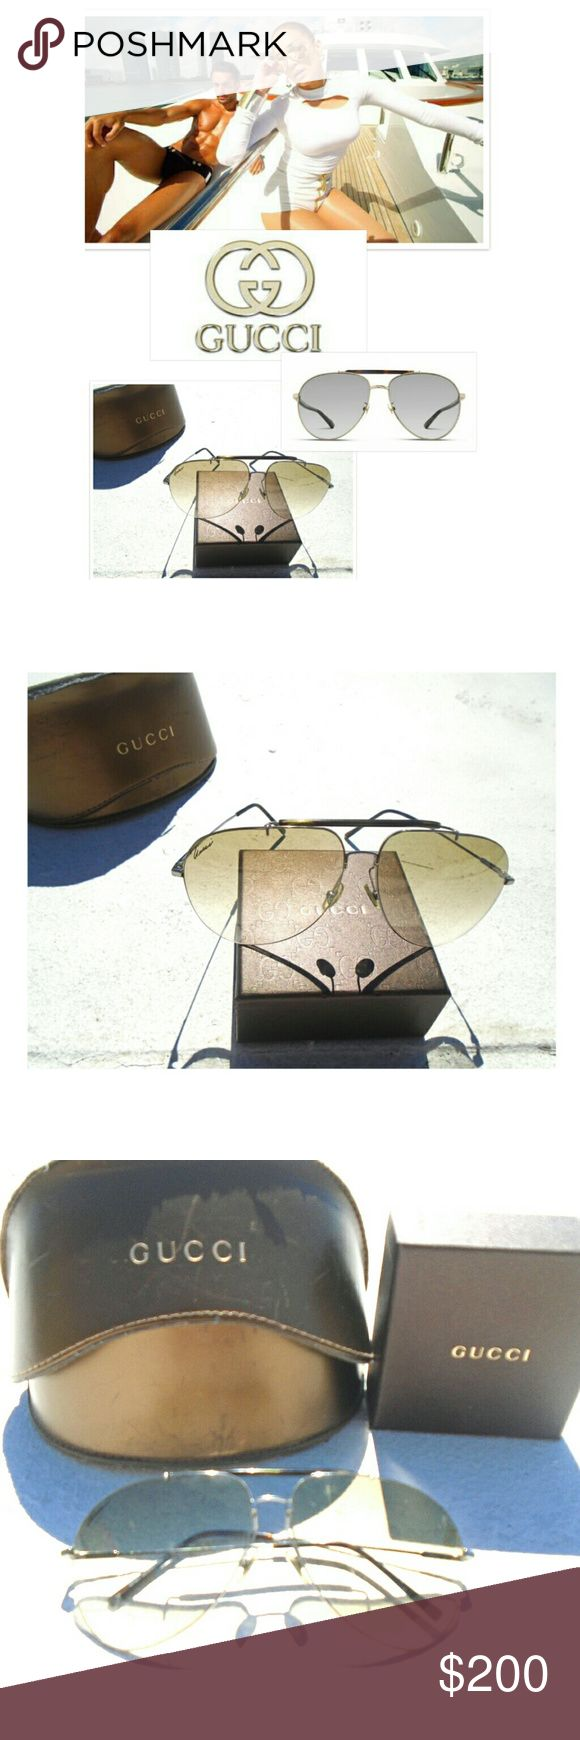 GUCCI UNISEX AVIATORS GLASSES Pre-Loved GUCCI AVIATORS GLASSES  COME WITH CASE  & GUCCI CLEANING INCLUDED BUY NOW OR BUNDLE AND SAVE  WE LOVE OFFERS!  SUGGESTED SELLER  SAME DAY SHIPPING  SHOP WITH CONFIDENCE Gucci Accessories Glasses